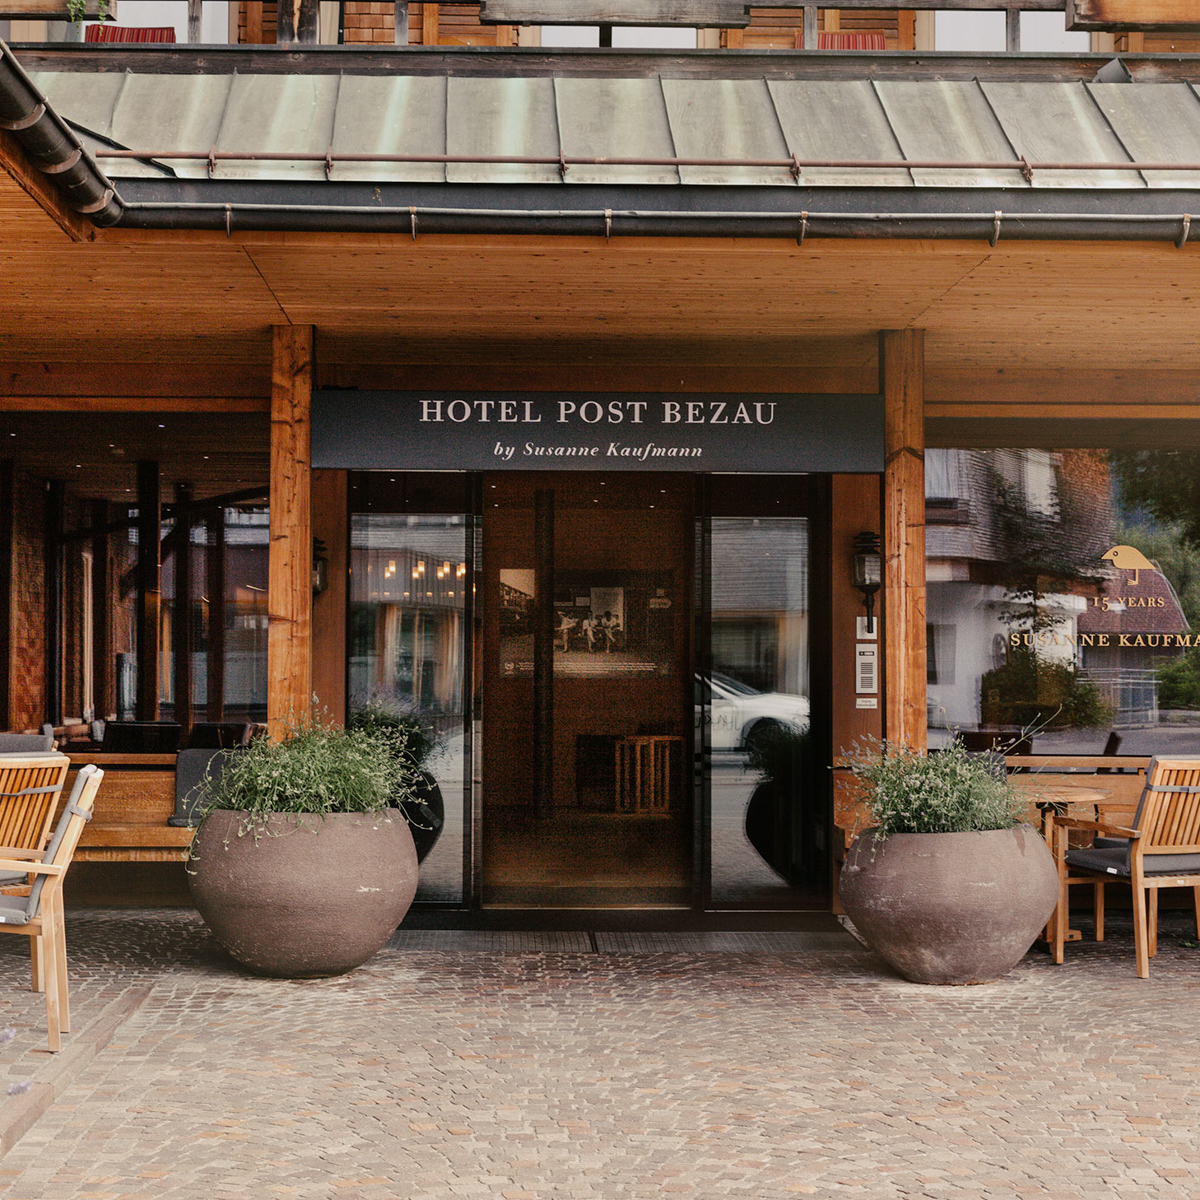 Hotel Post Bezau by Susanne Kaufmann-7